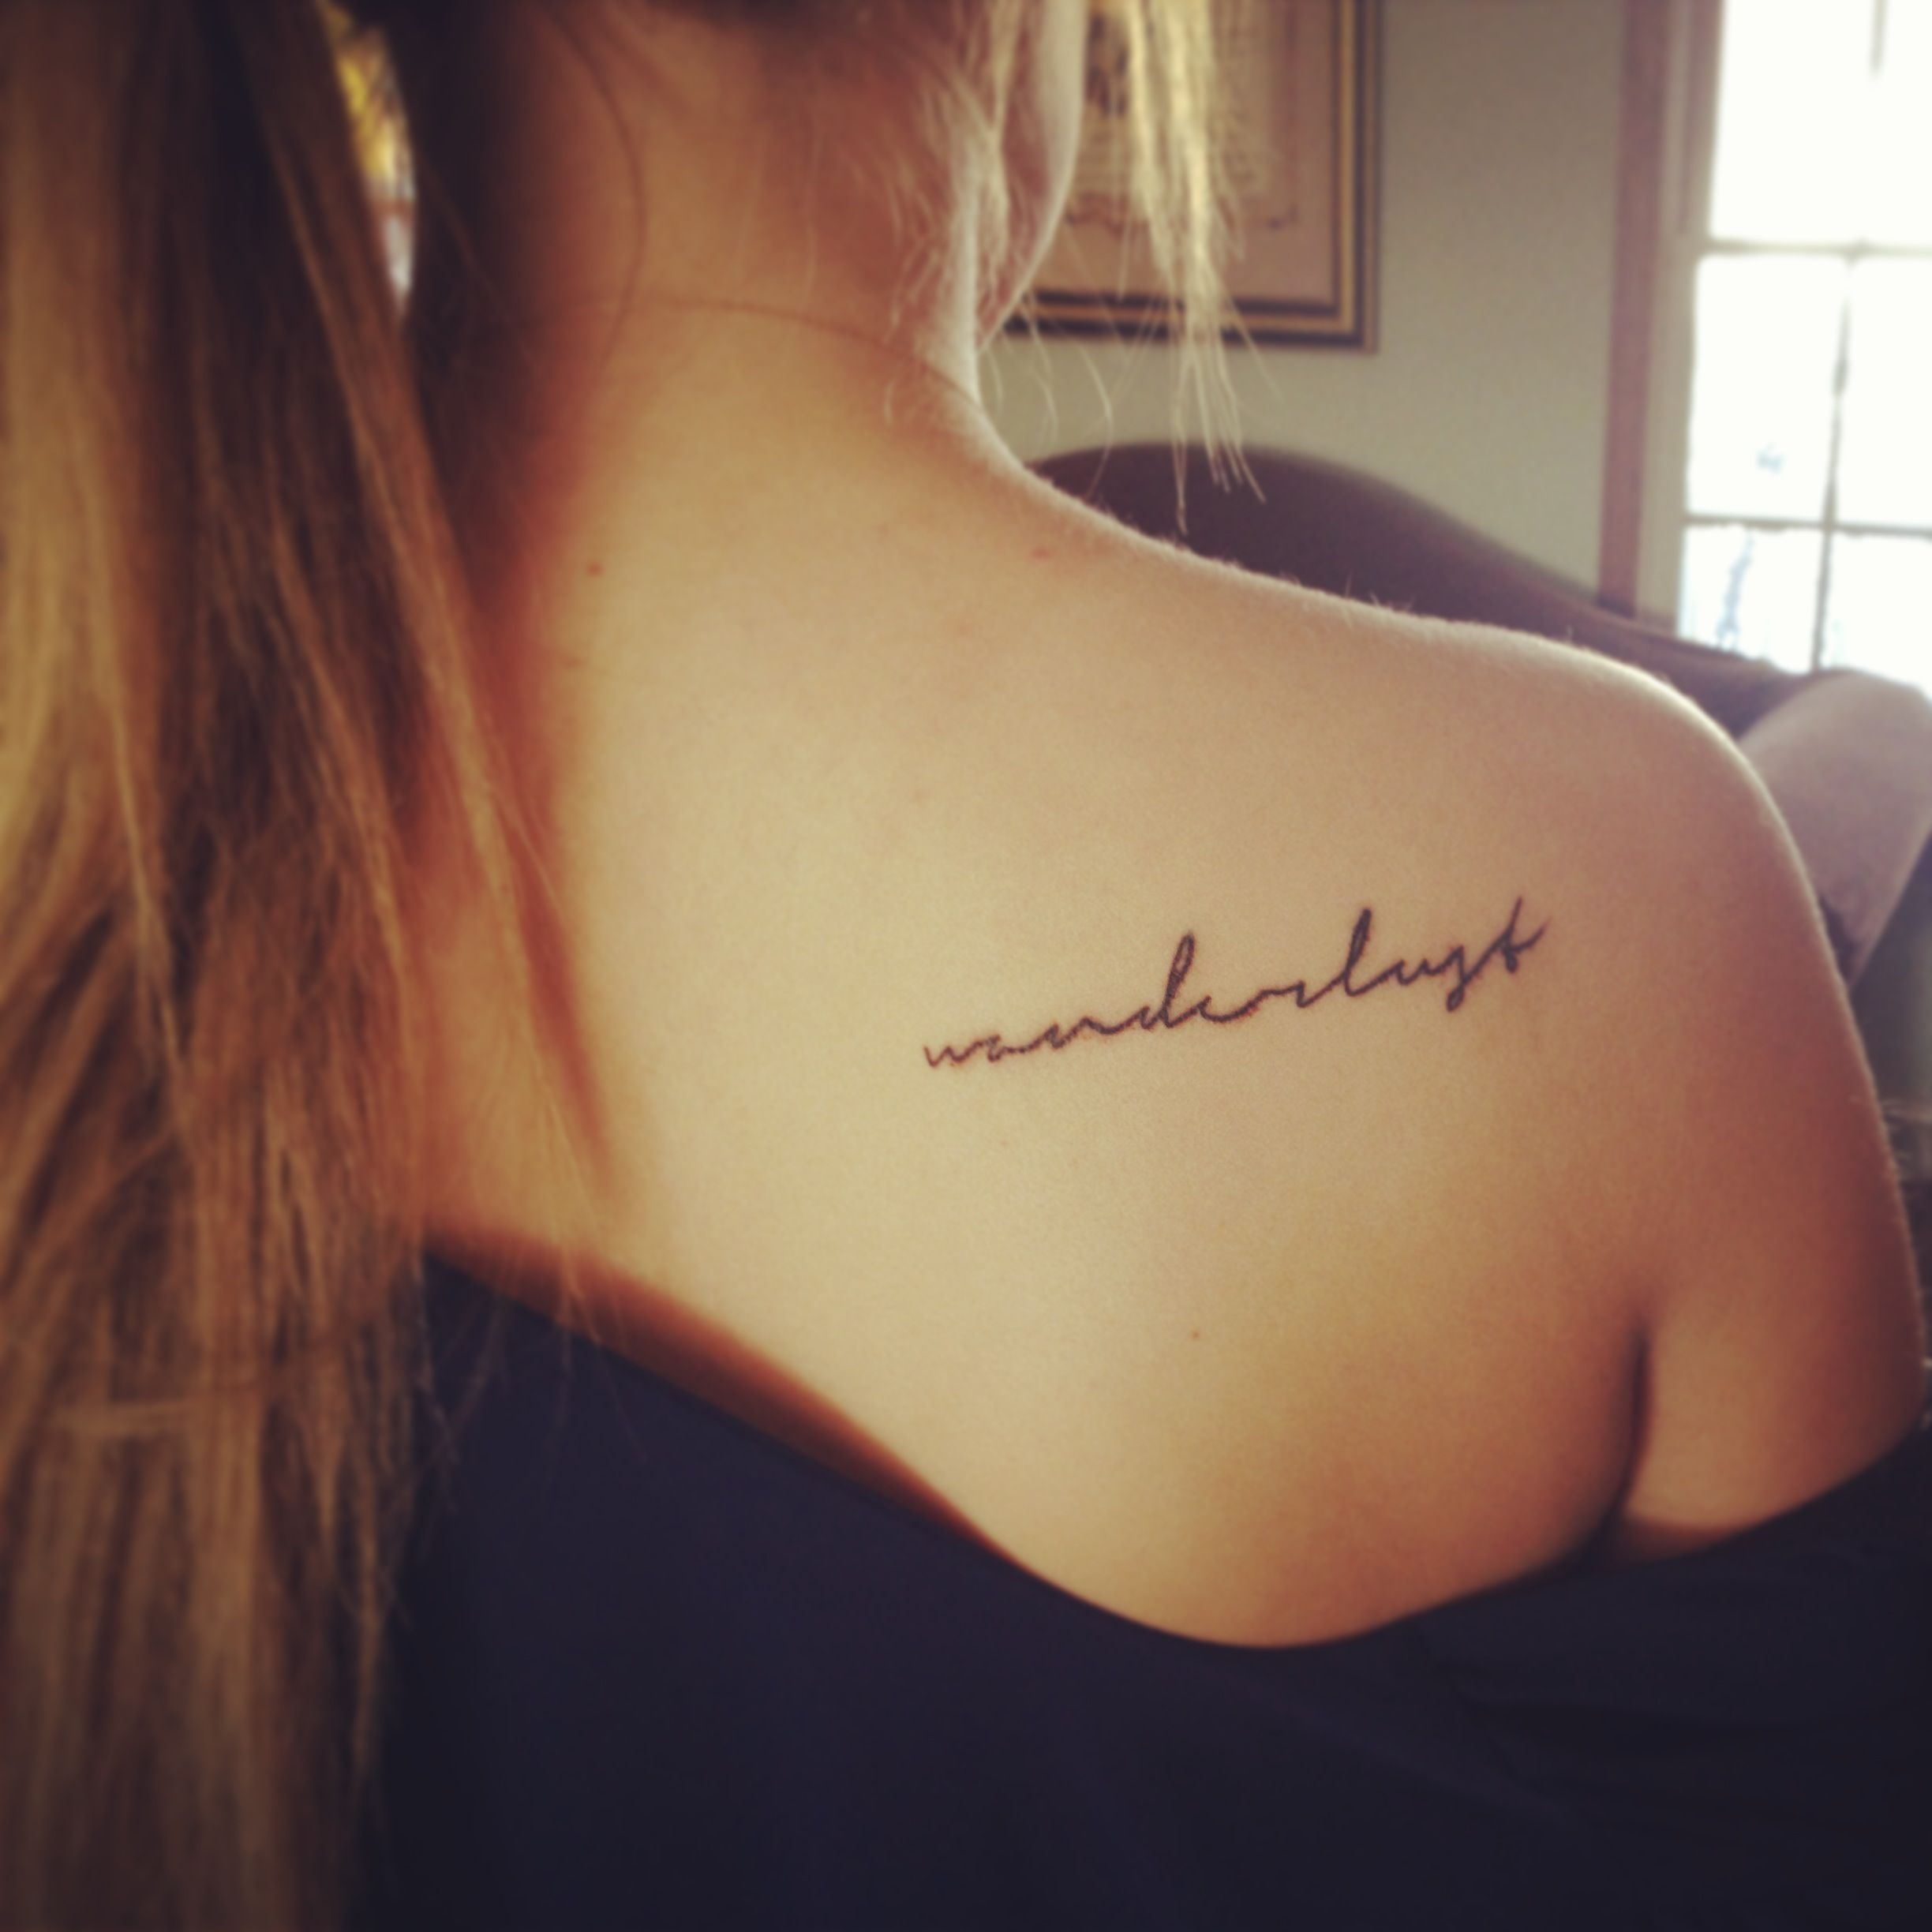 1000+ images about Tattoo's on Pinterest | Planet Tattoos ...